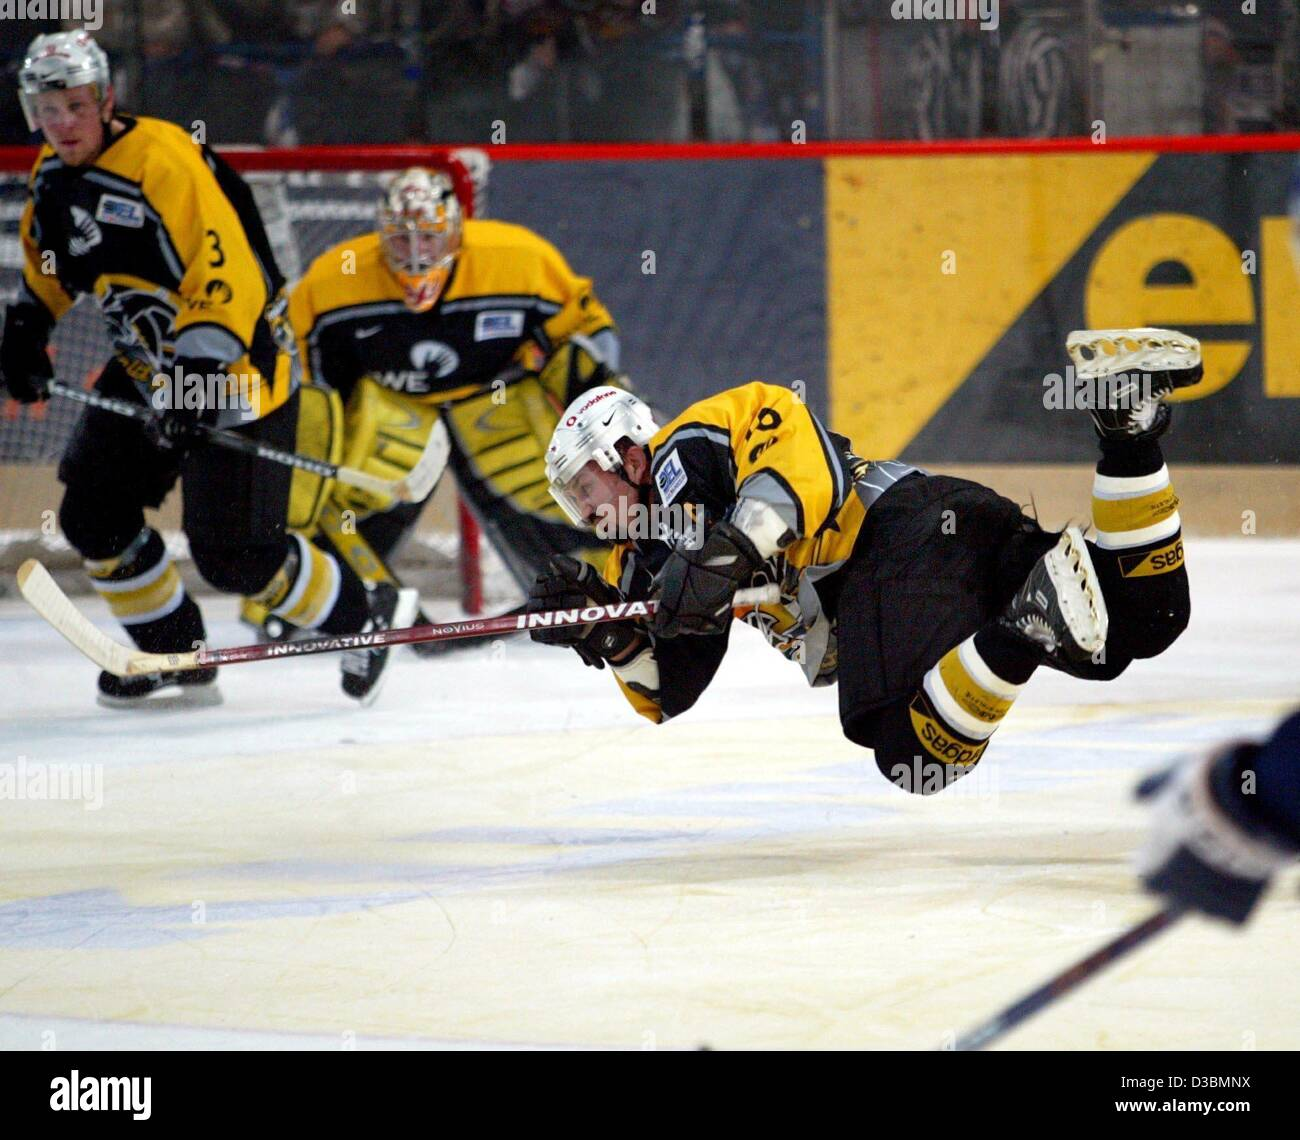 (dpa) - Canadian Gary Shuchuk of the Krefeld Pinguine (Krefeld penguins) seems to fly over the ice rink during the Stock Photo